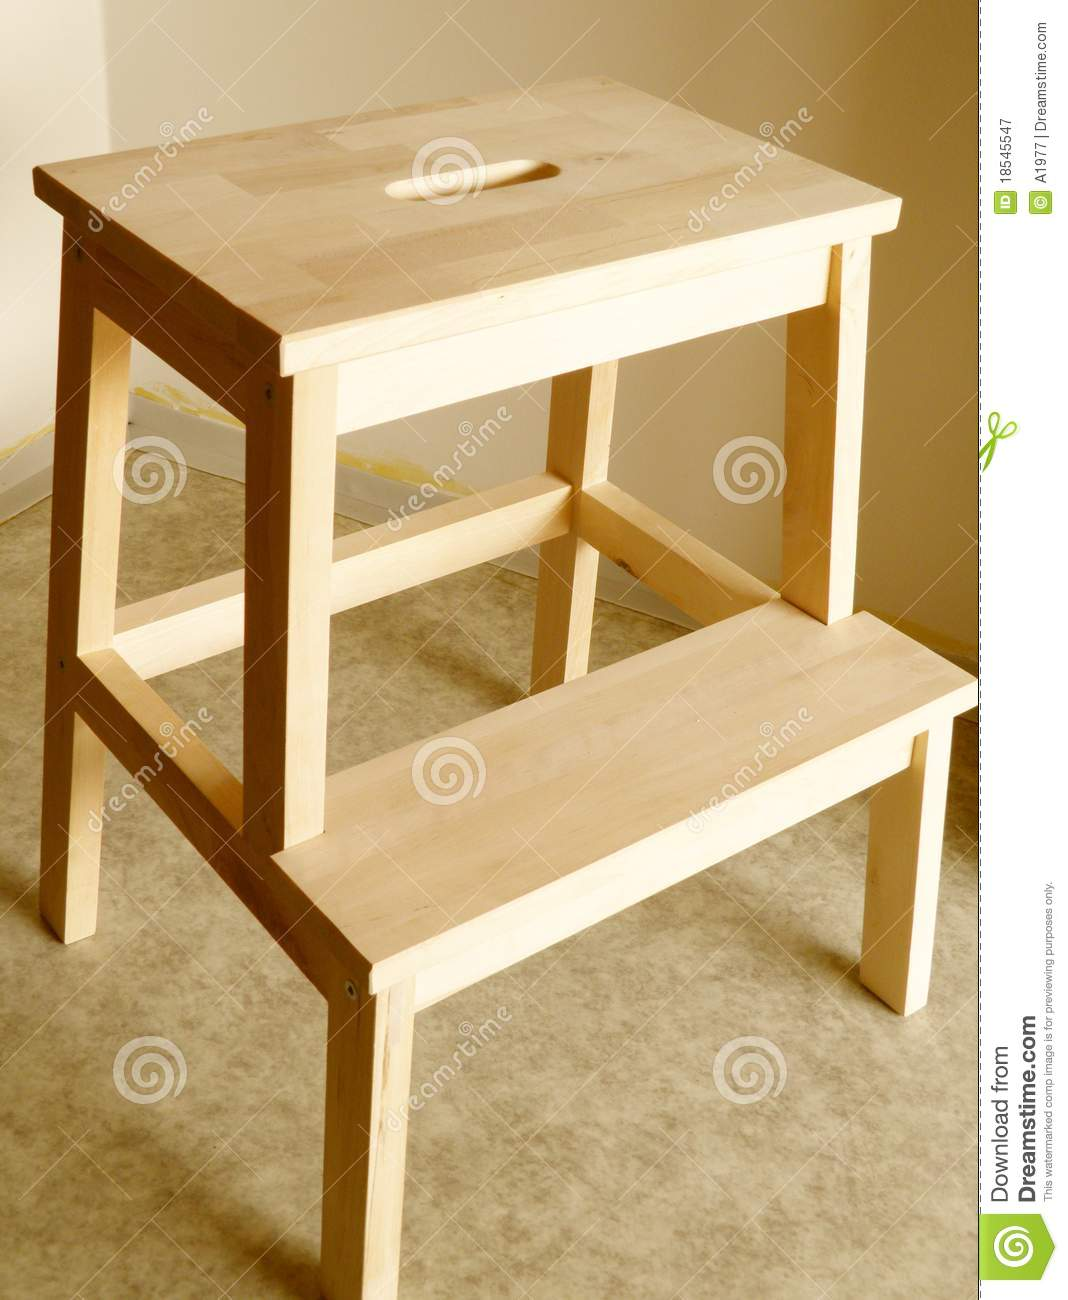 Royalty-Free Stock Photo. Download Step stool ... & Step stool stock image. Image of step wooden object - 18545547 islam-shia.org